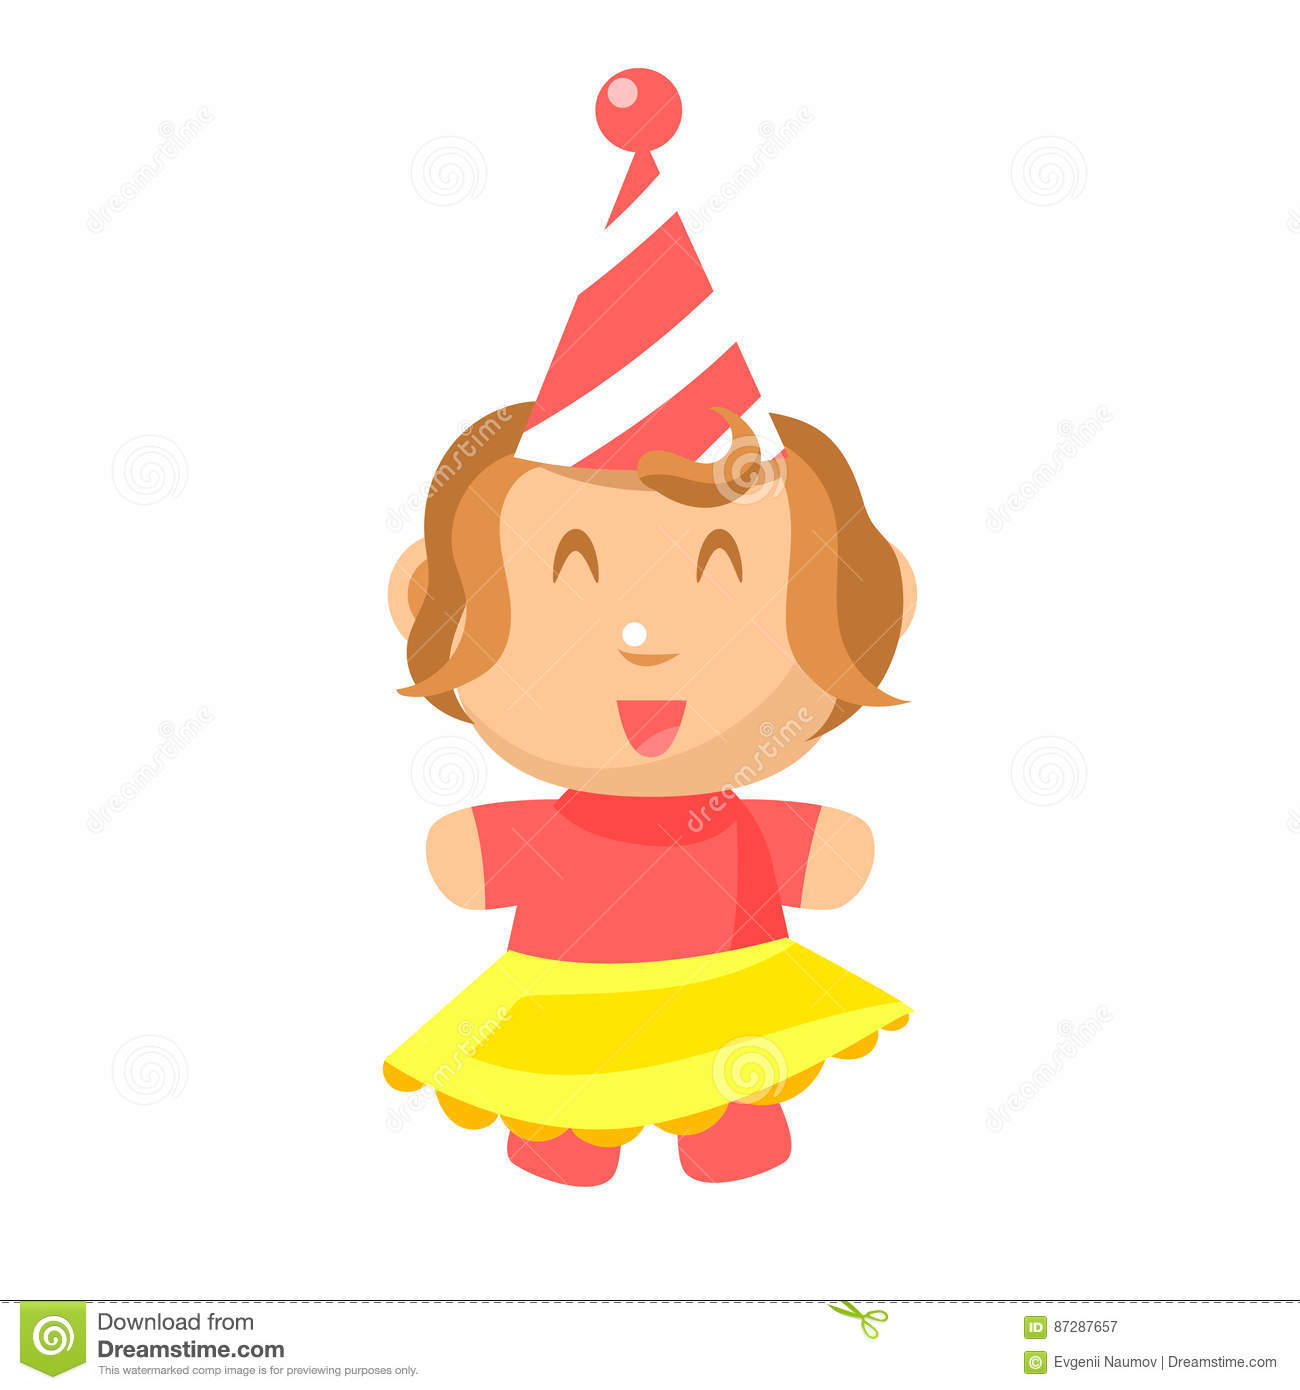 Baby girl clipart cimple. Small happy in party